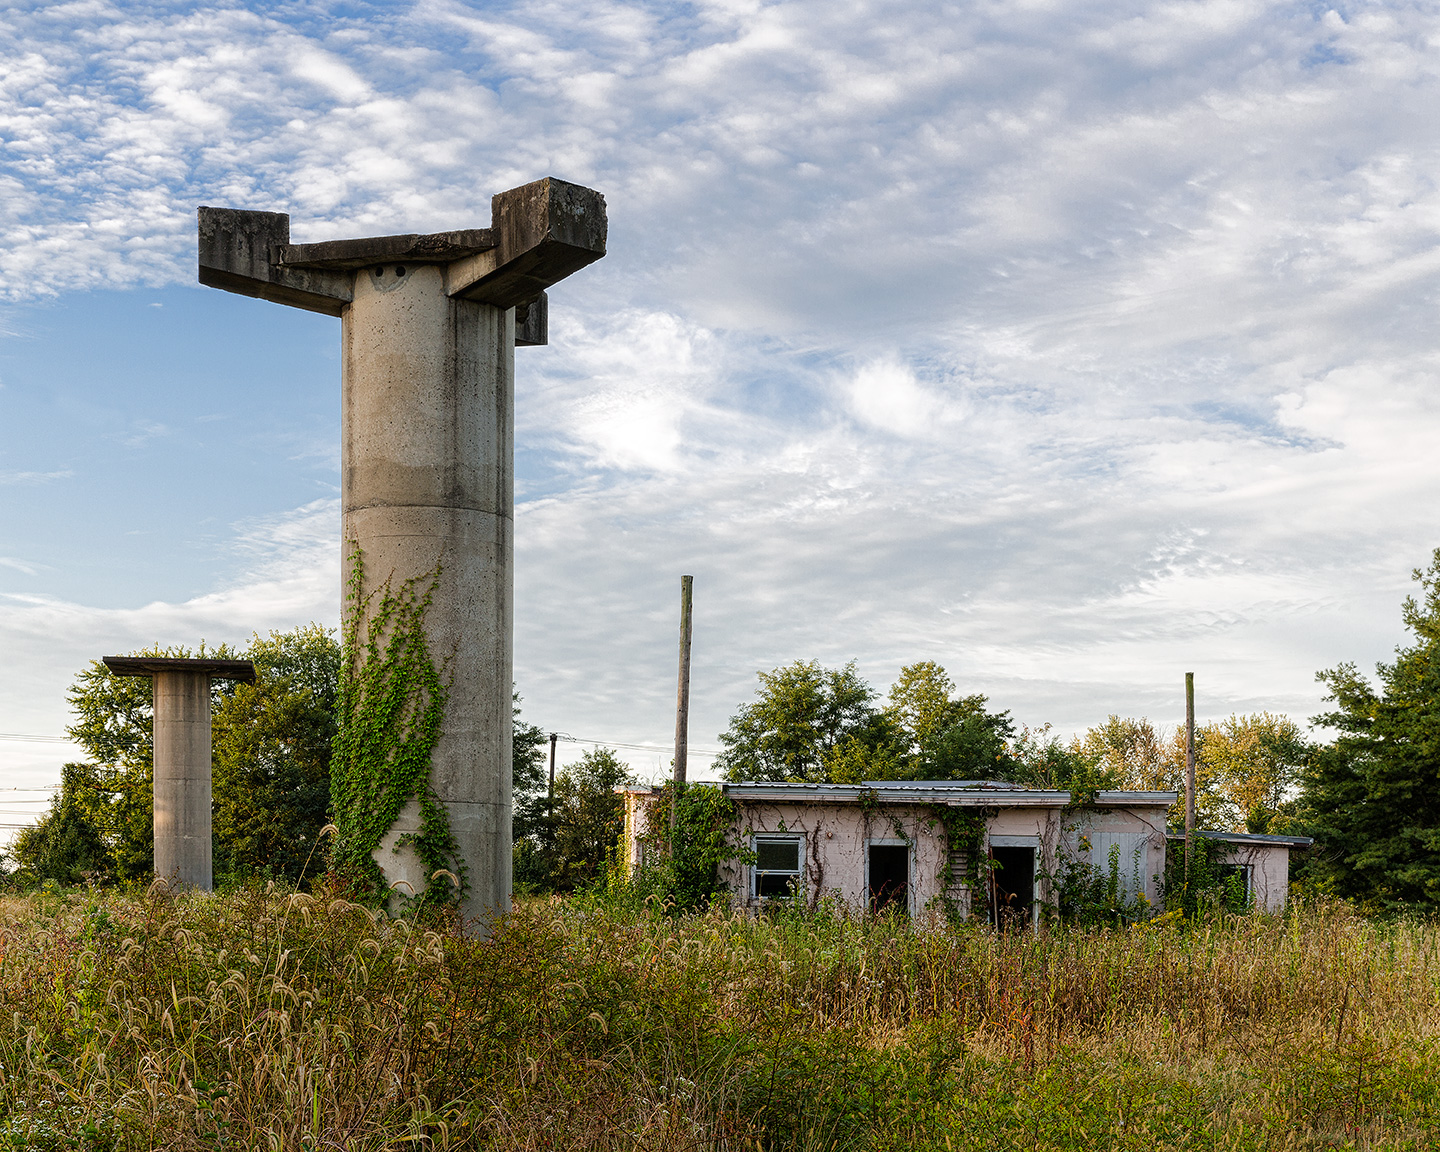 Radar Towers and Control Building by Richard Lewis